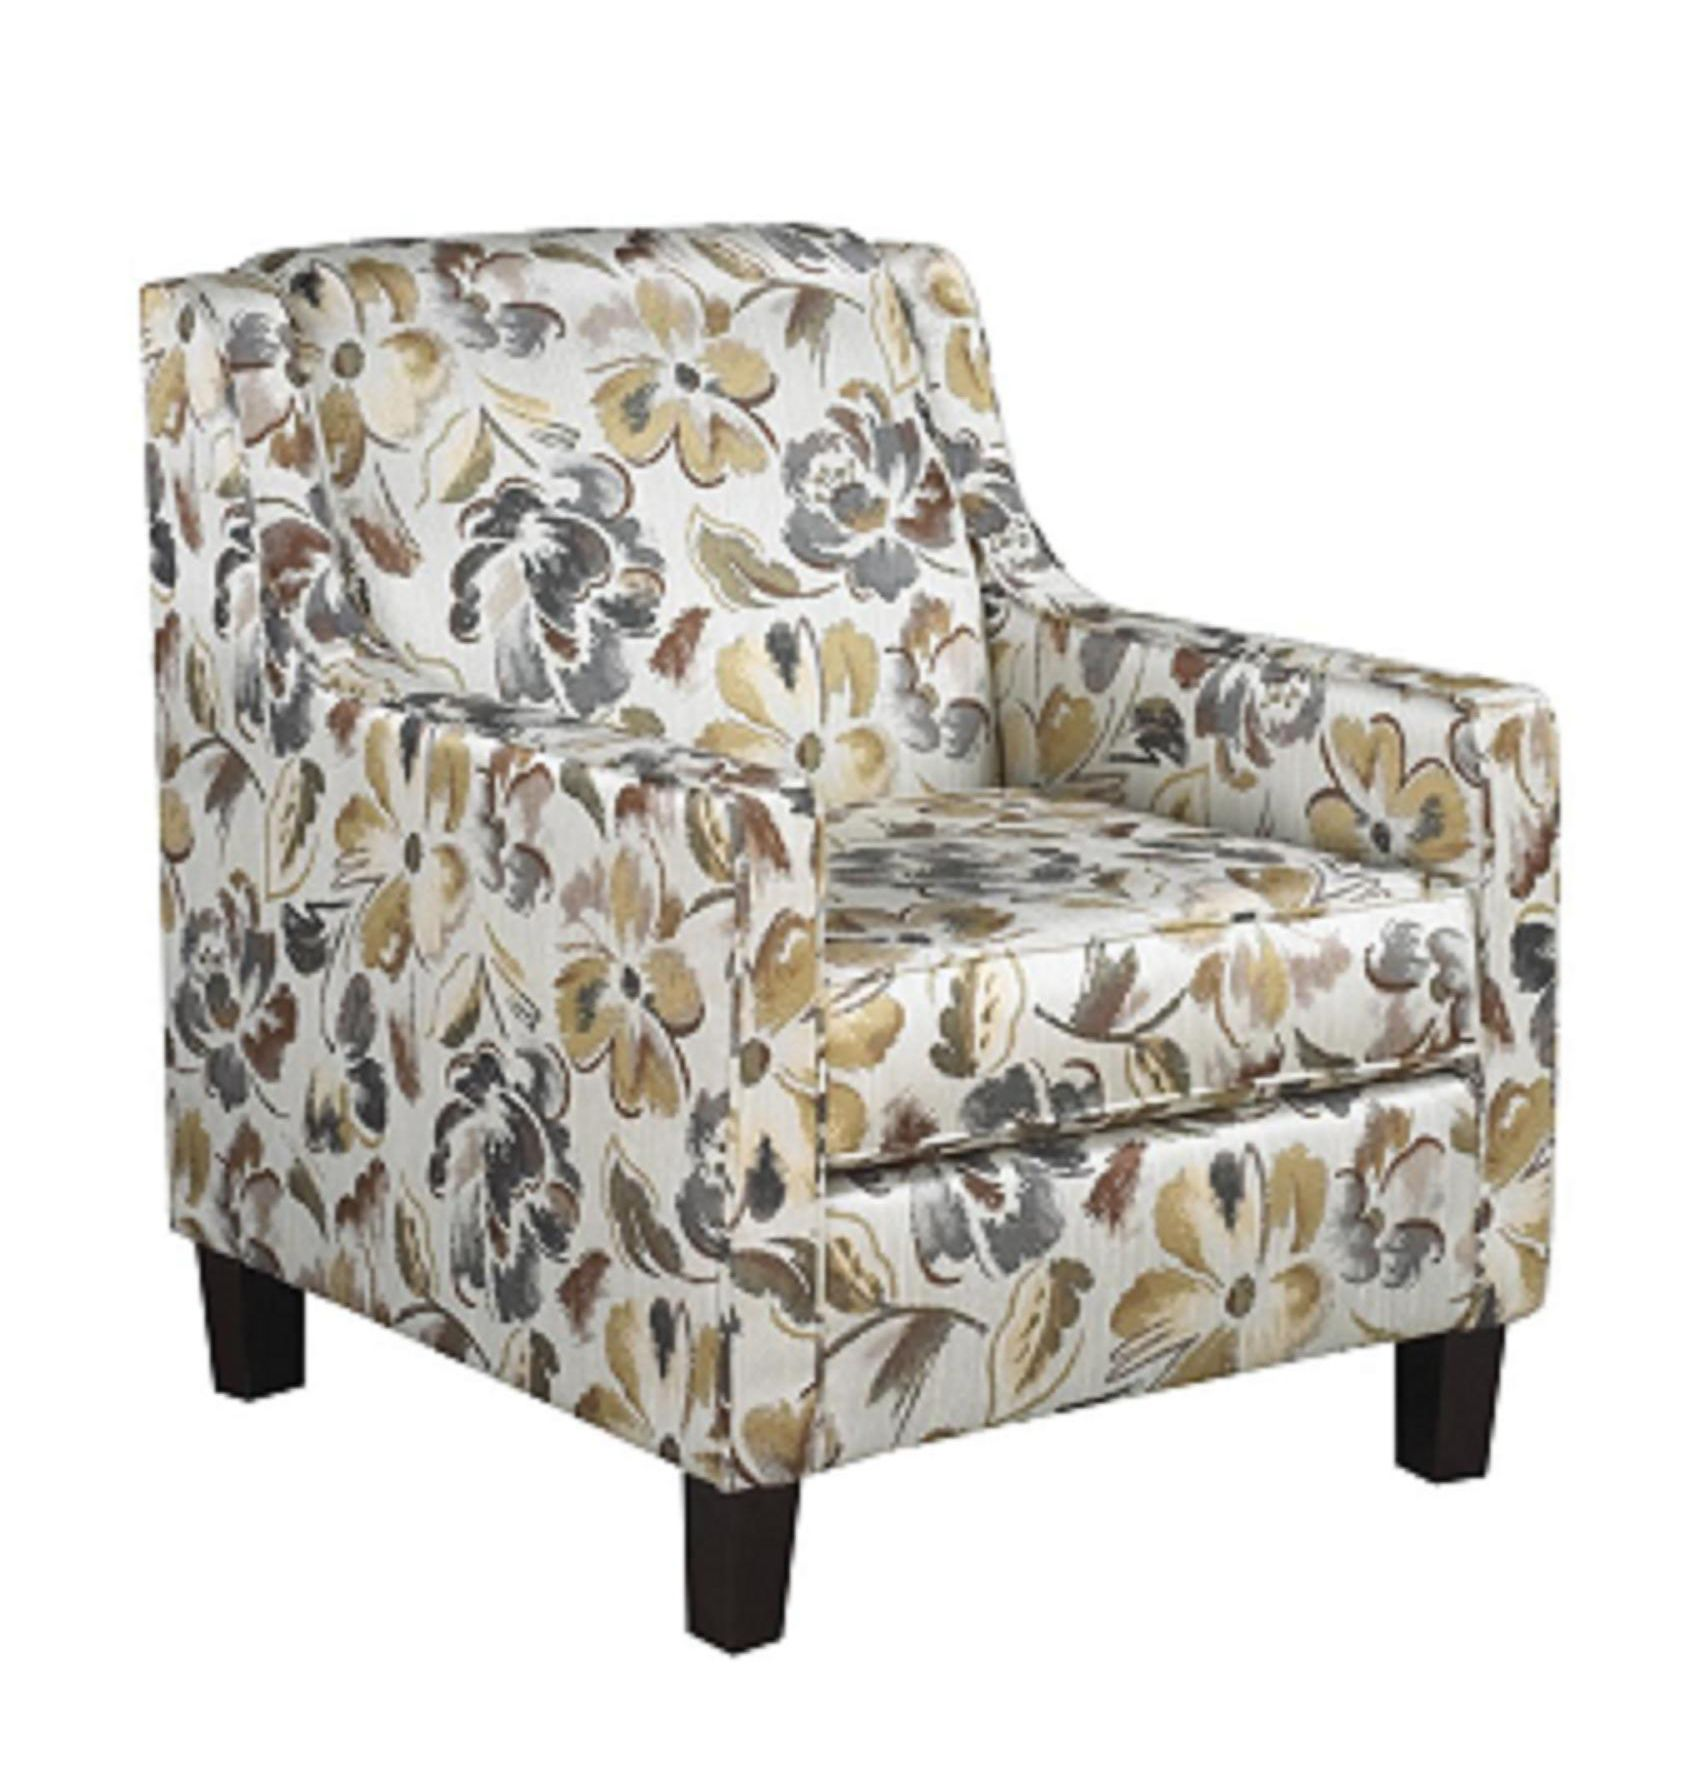 Canadian Made Fabric 3350 Multi Color Floral Print Accent Chair